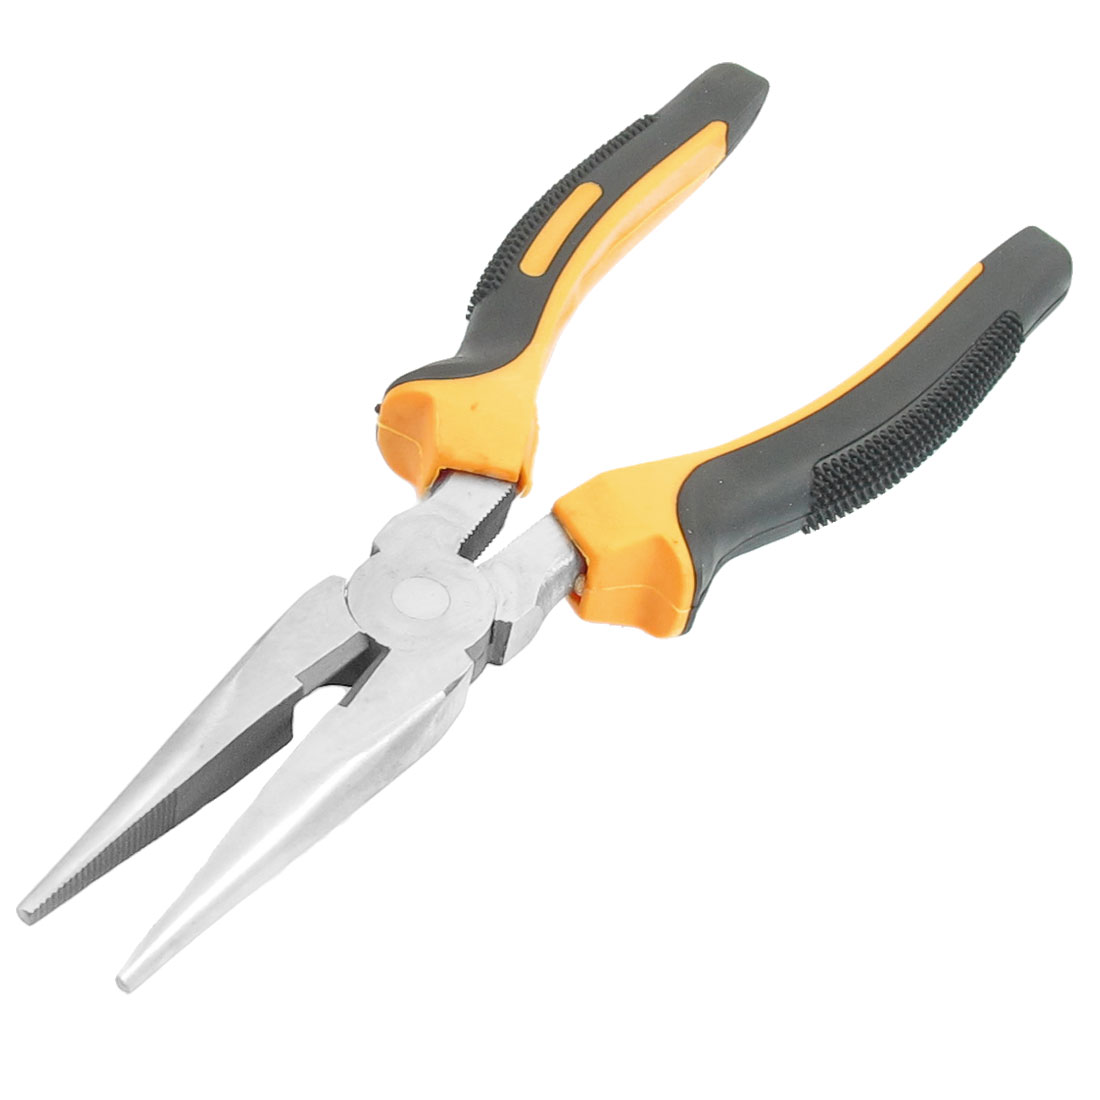 "Plastic Coated Handle Nose Pliers Wire Cutter Yellow Black 8"" Length"